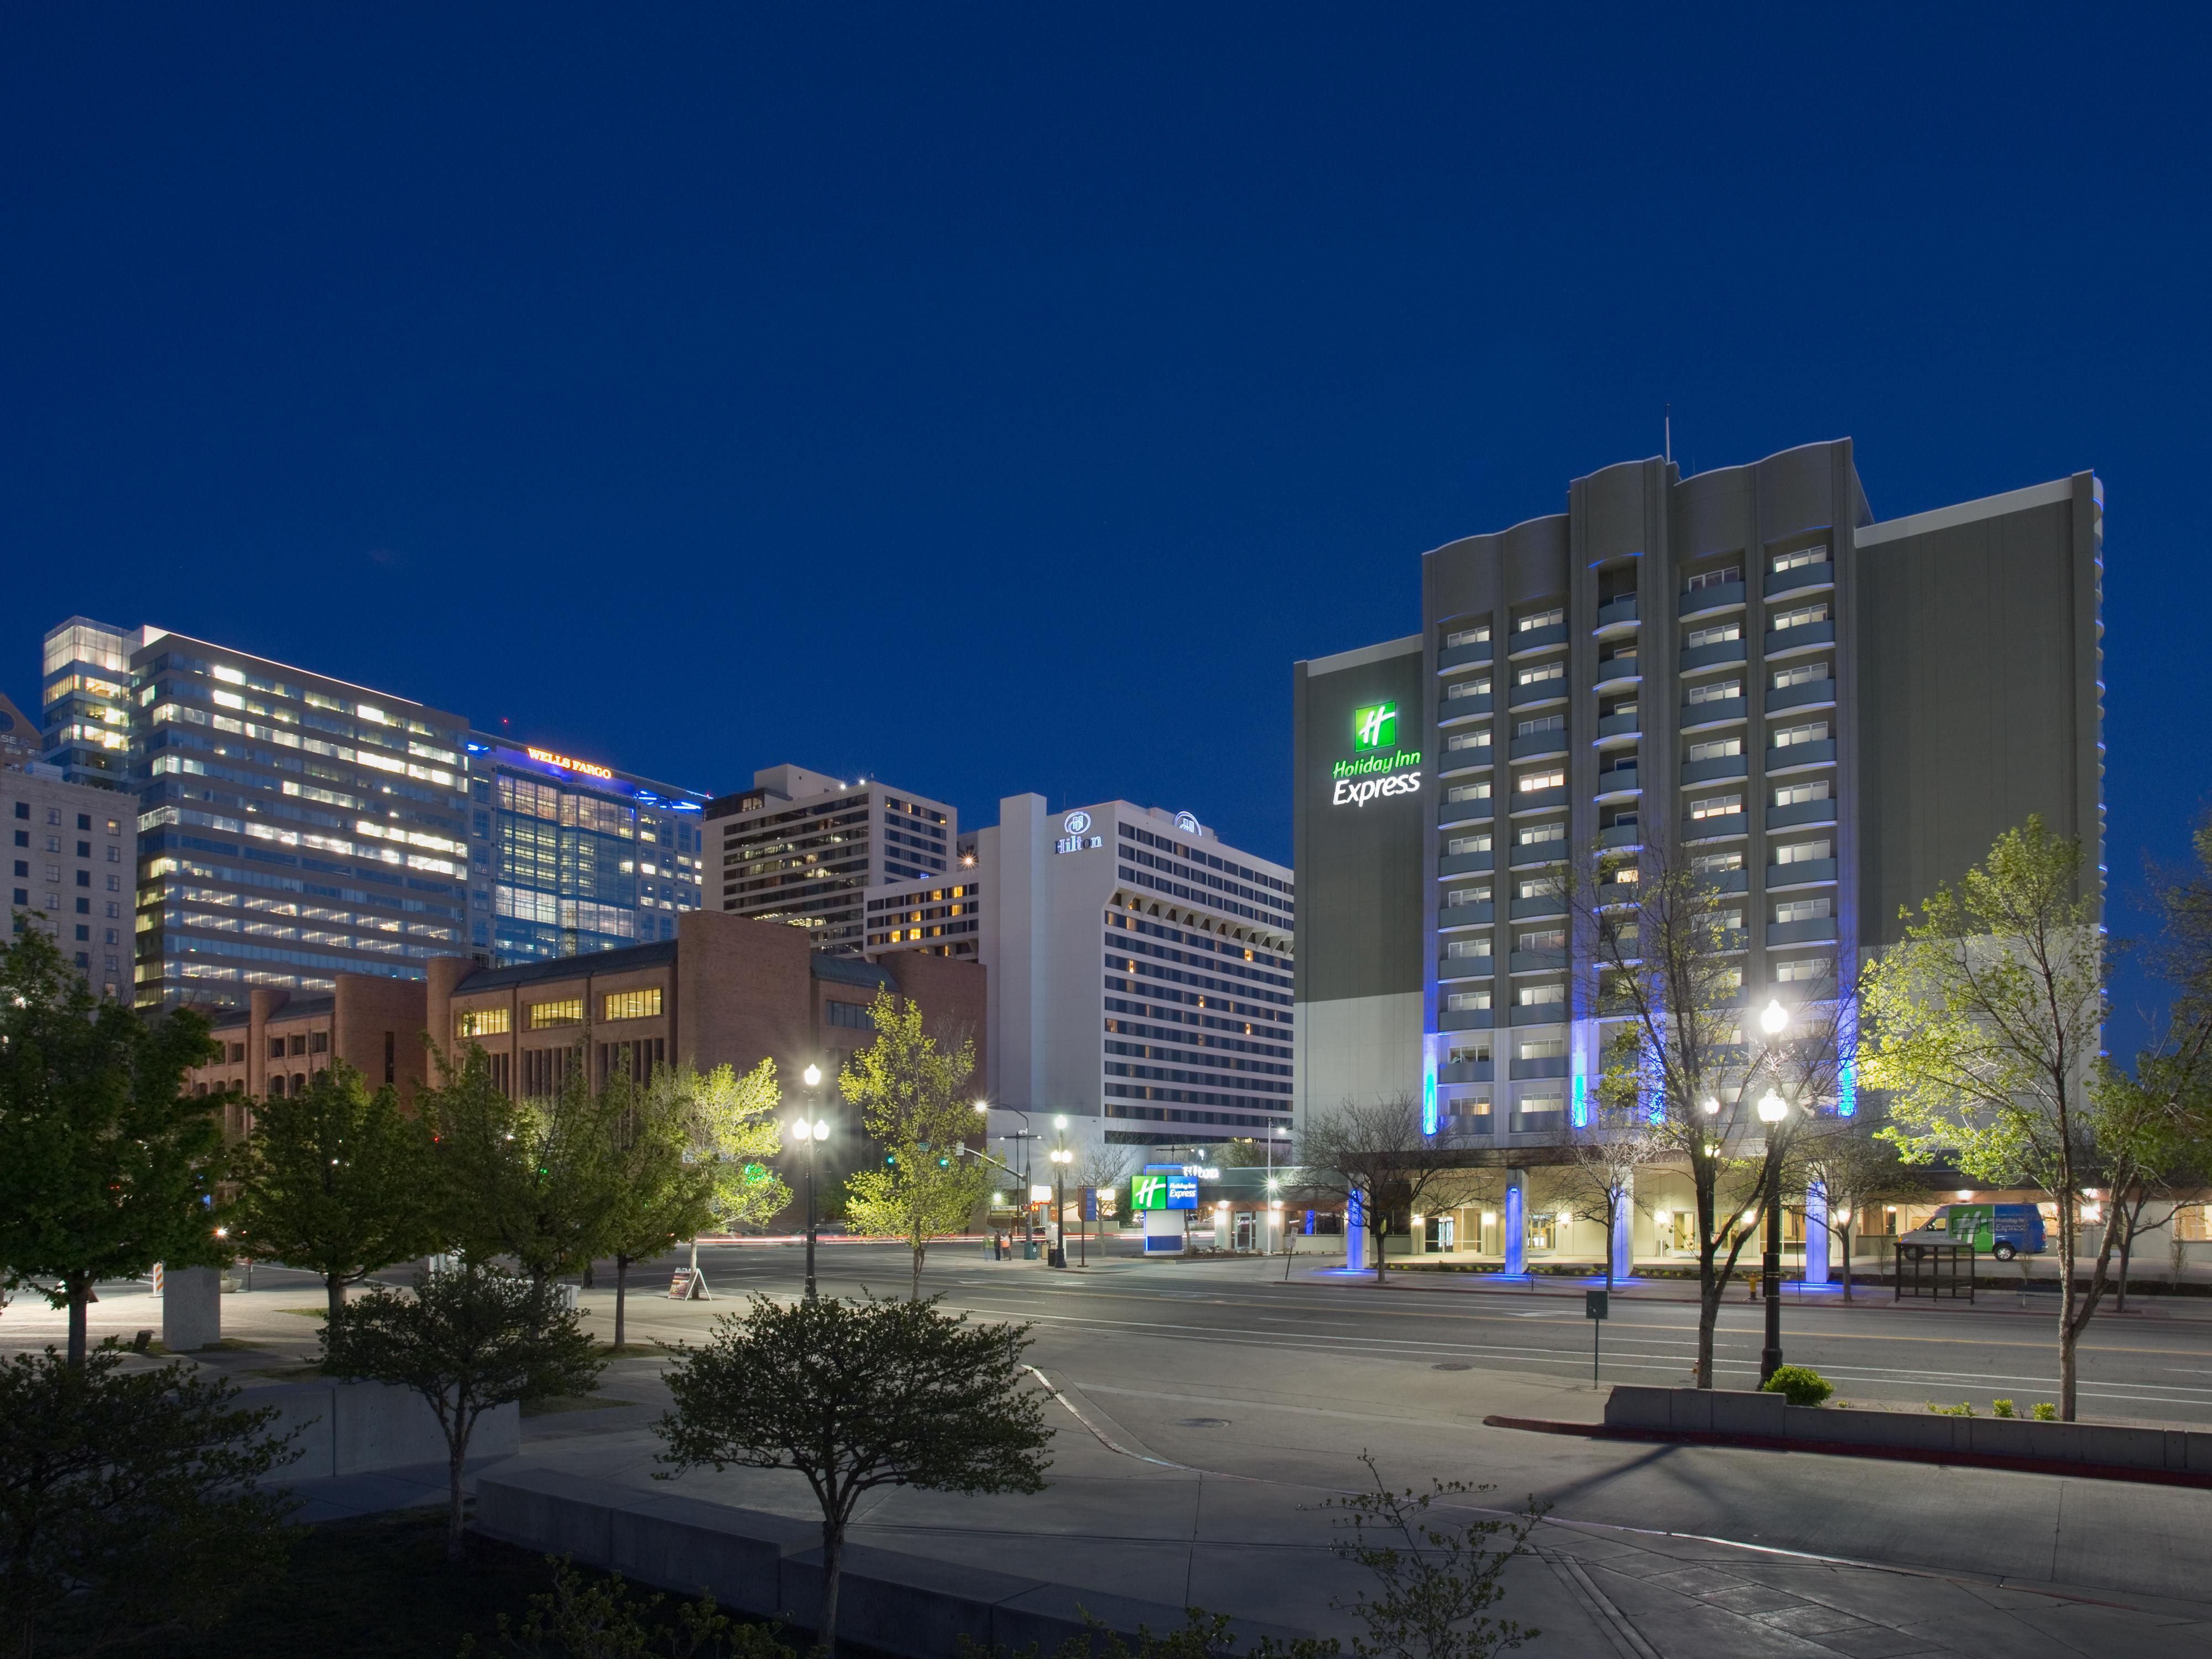 Holiday Inn Express Salt Lake City Downtown at night